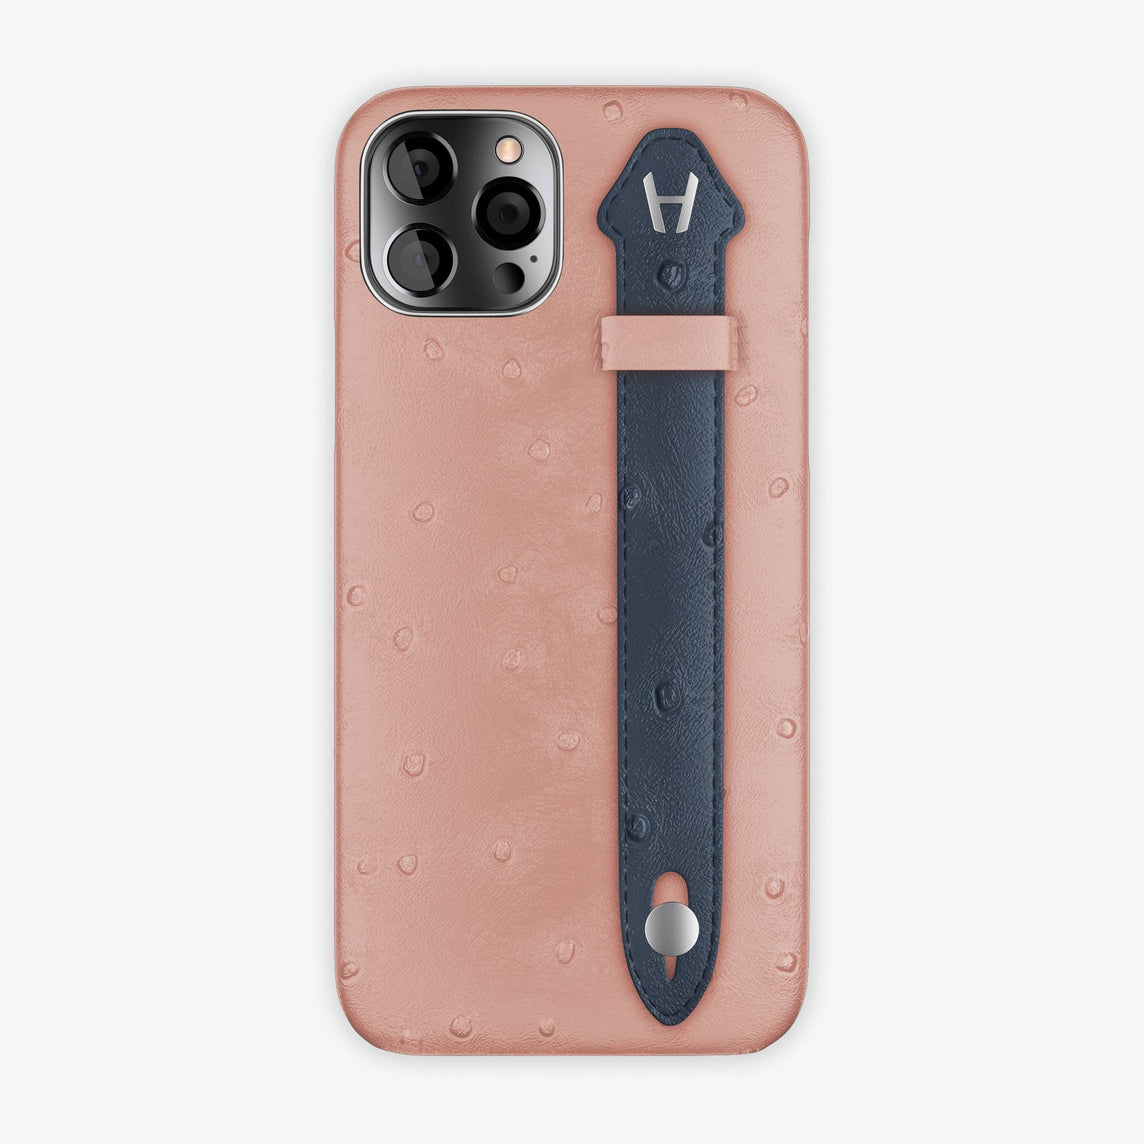 Ostrich Side Finger Case iPhone 12 Pro | Pink/Navy Blue - Stainless Steel